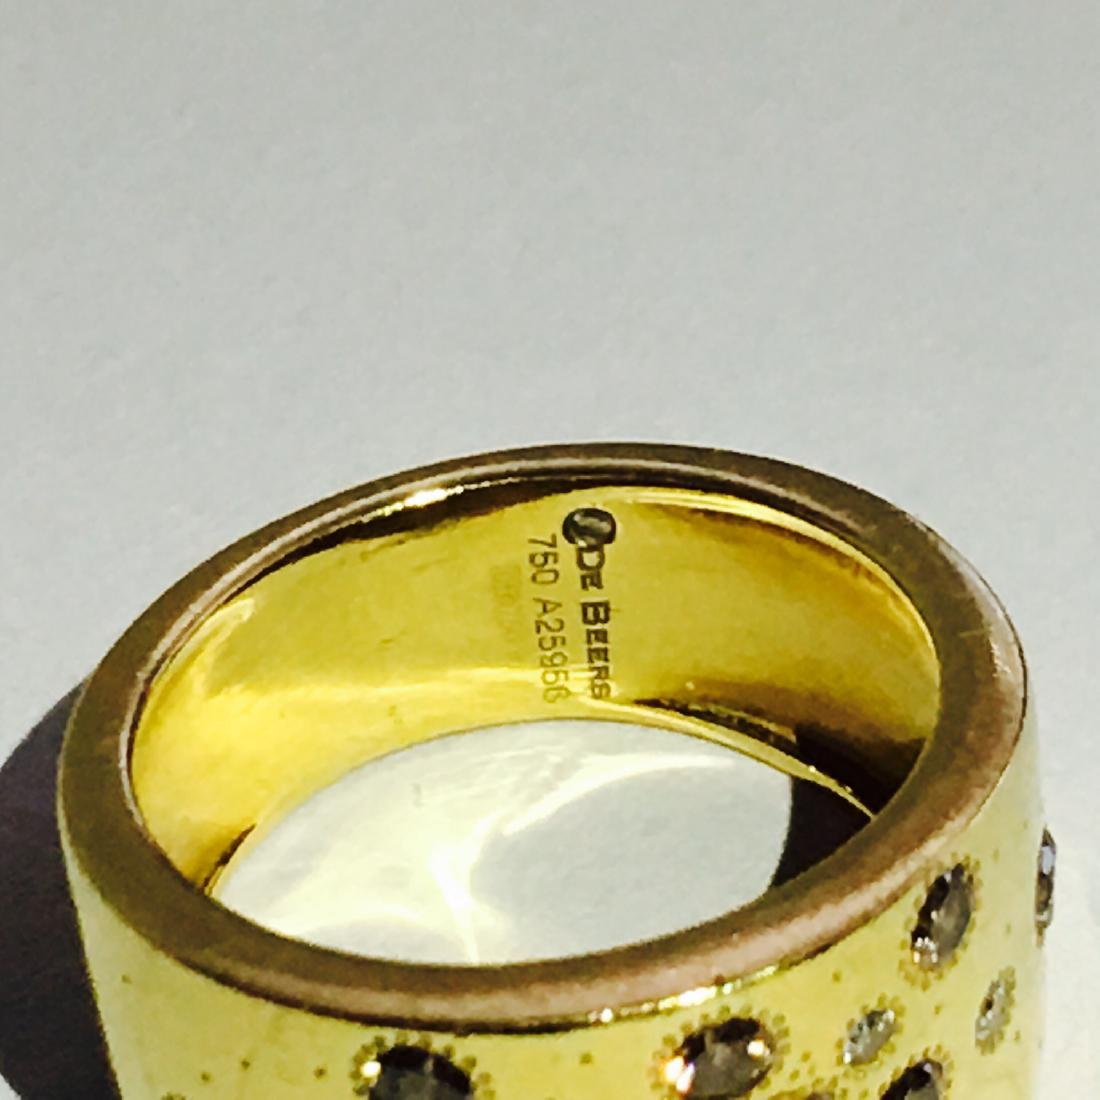 18k Gold ROUGH DIAMOND RING De beers Collection - 3